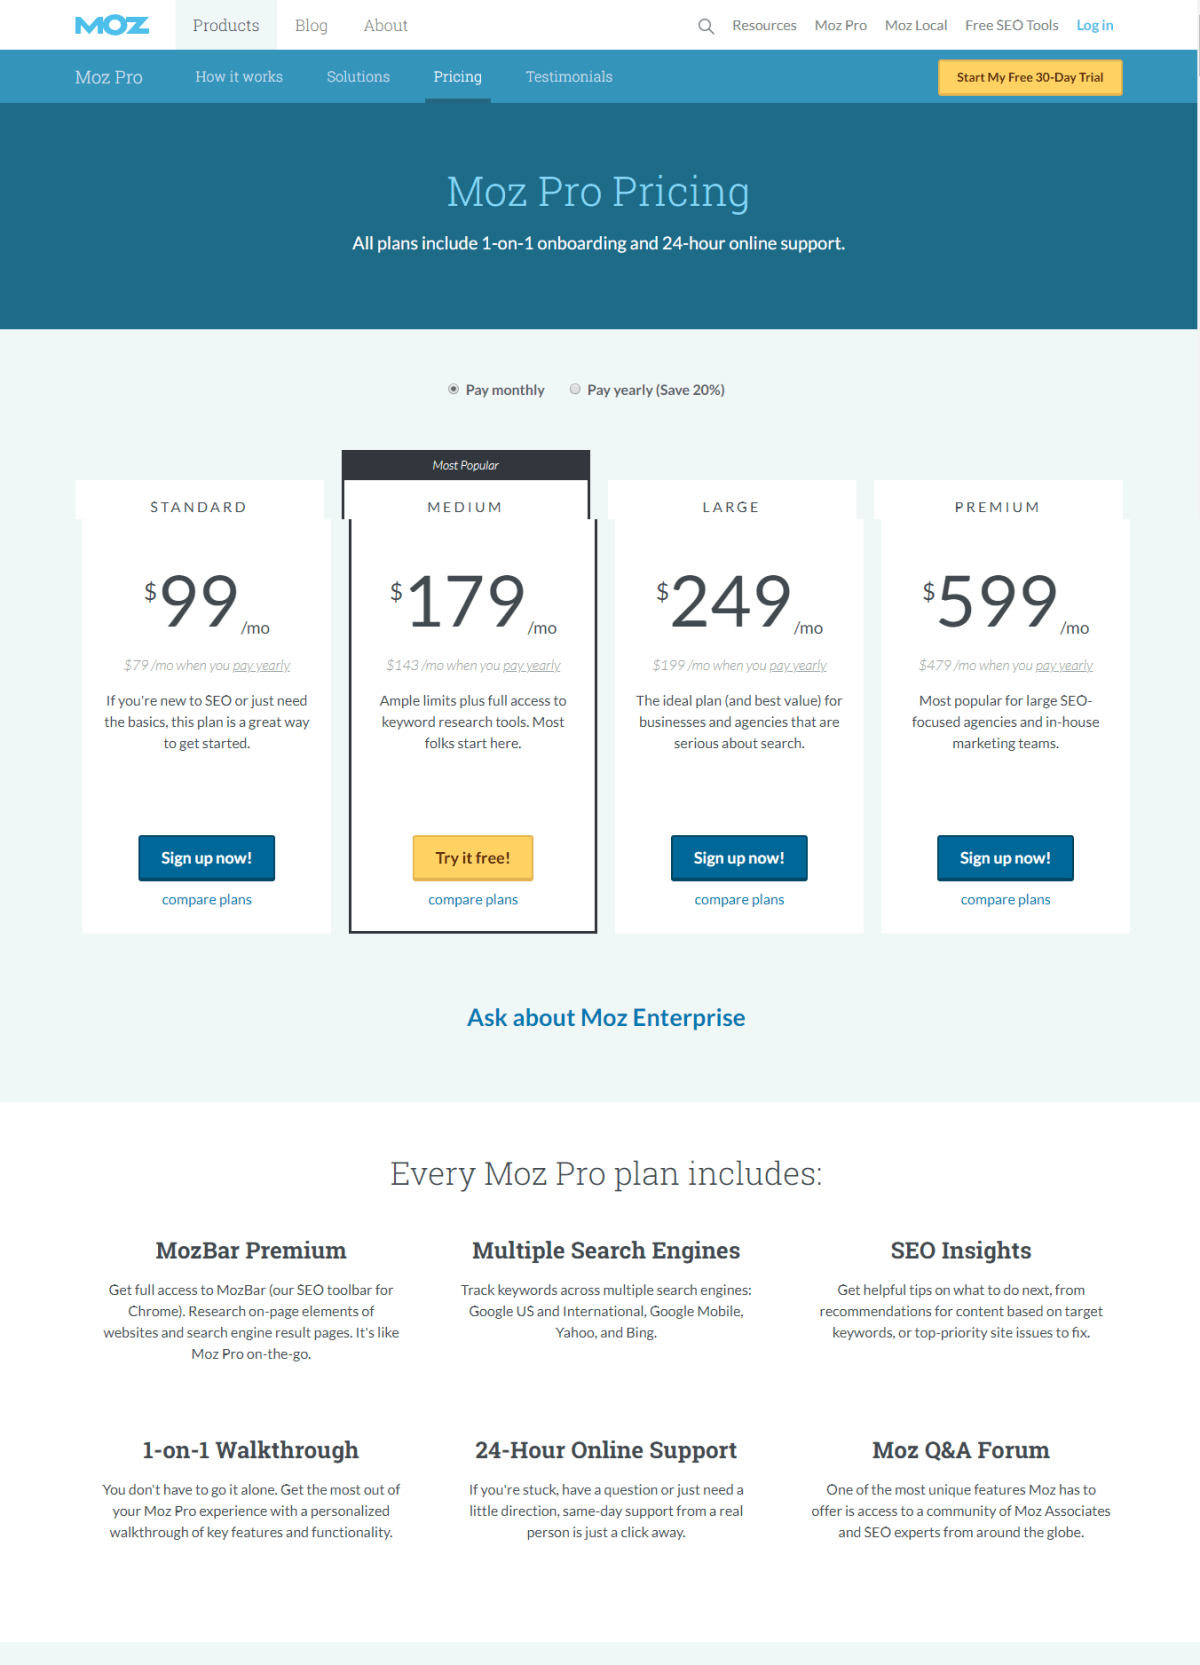 Moz Plans and Pricing